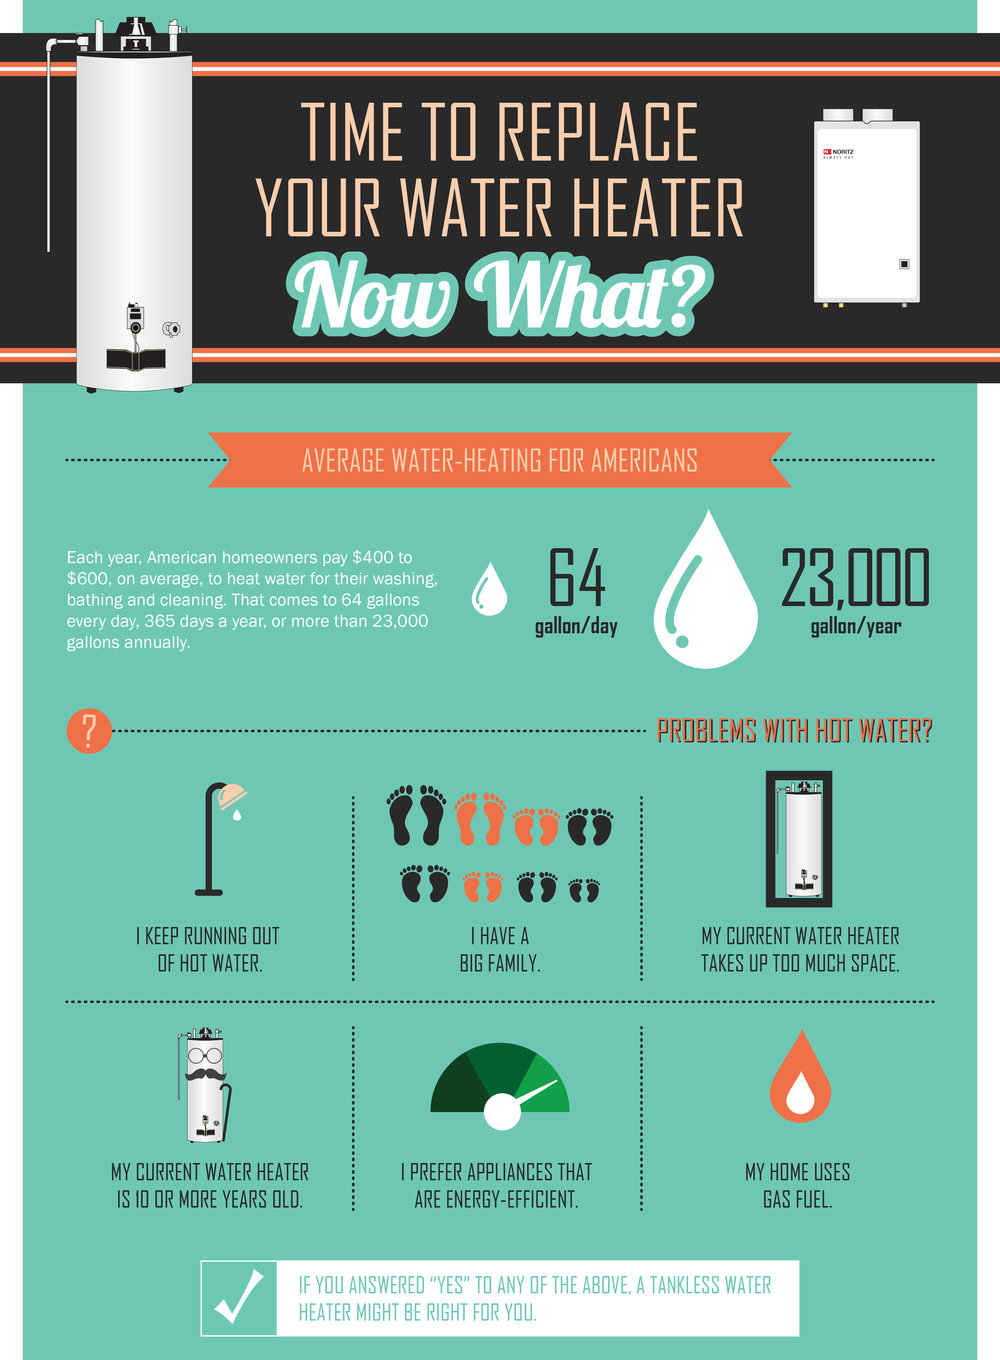 average-water-heating-for-americans-infographic-2013-noritz.jpg